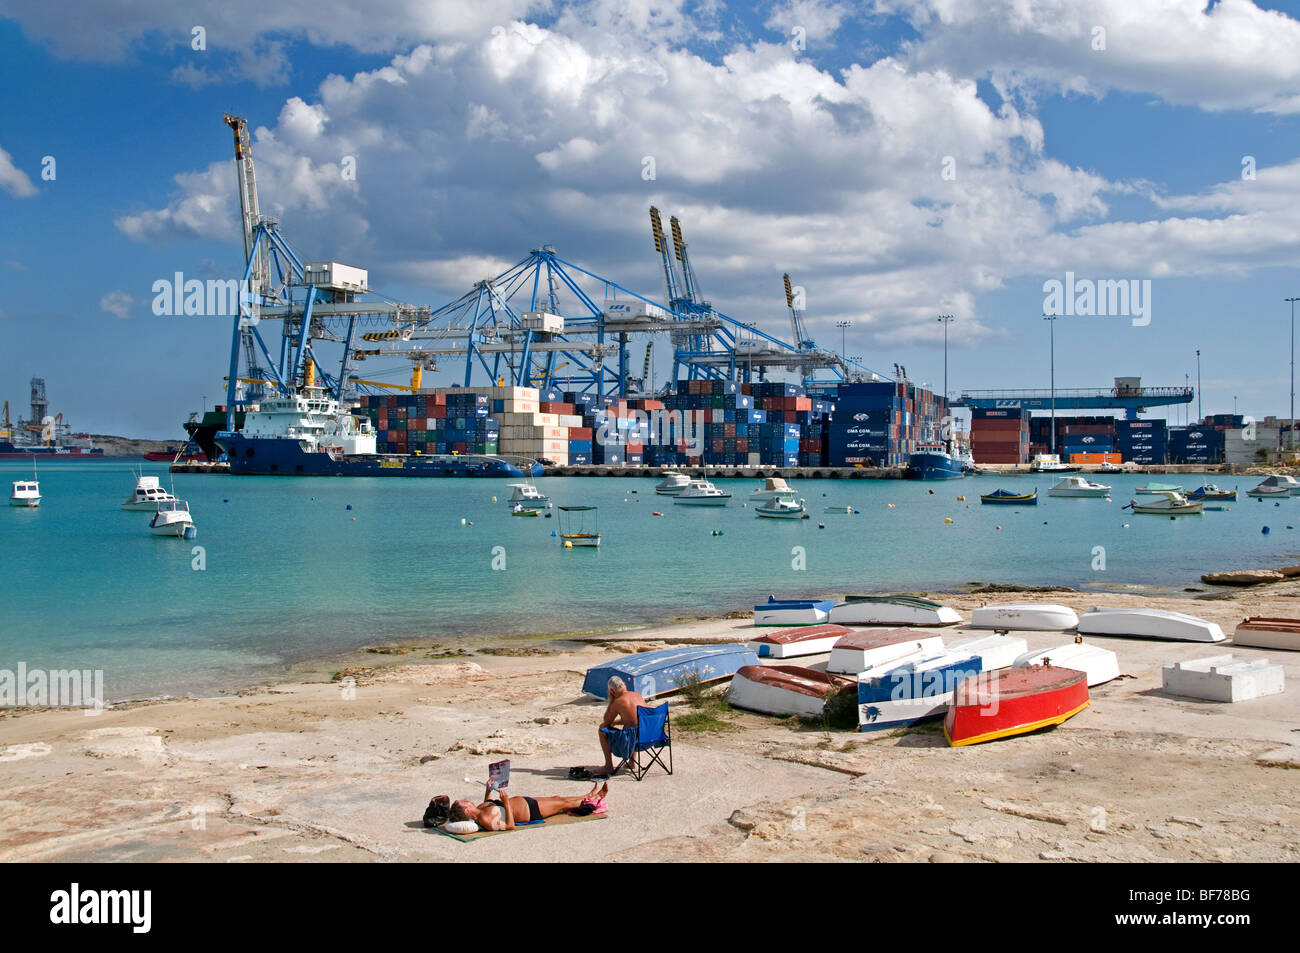 Port Harbor Salina Bay Container Malta Maltese - Stock Image